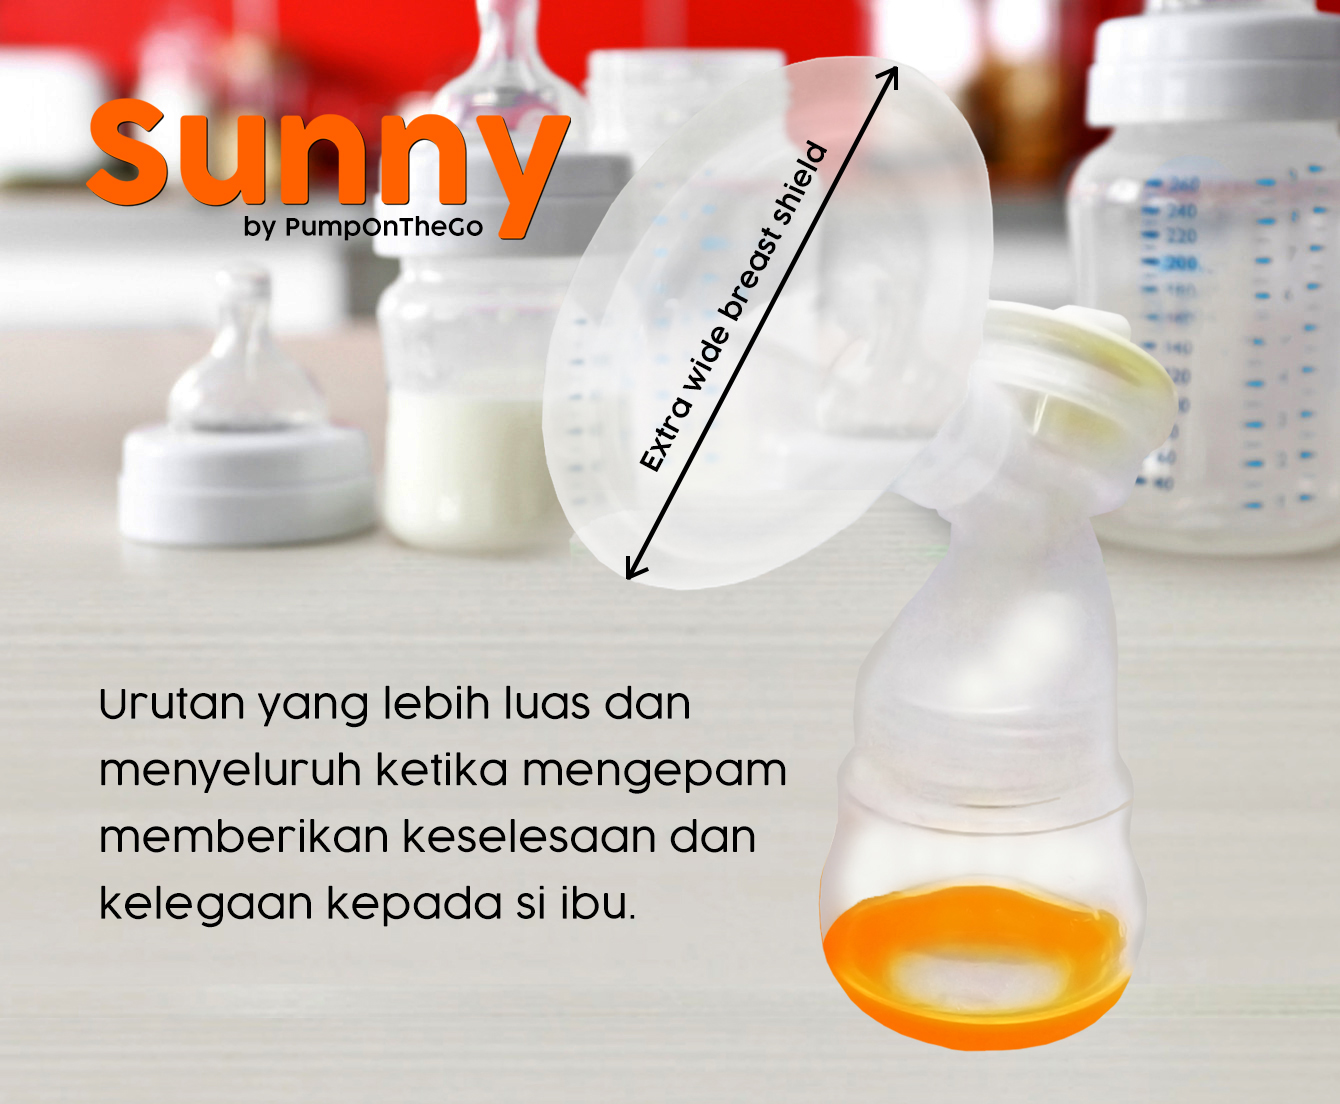 PumpOnTheGo Sunny Breast Pump